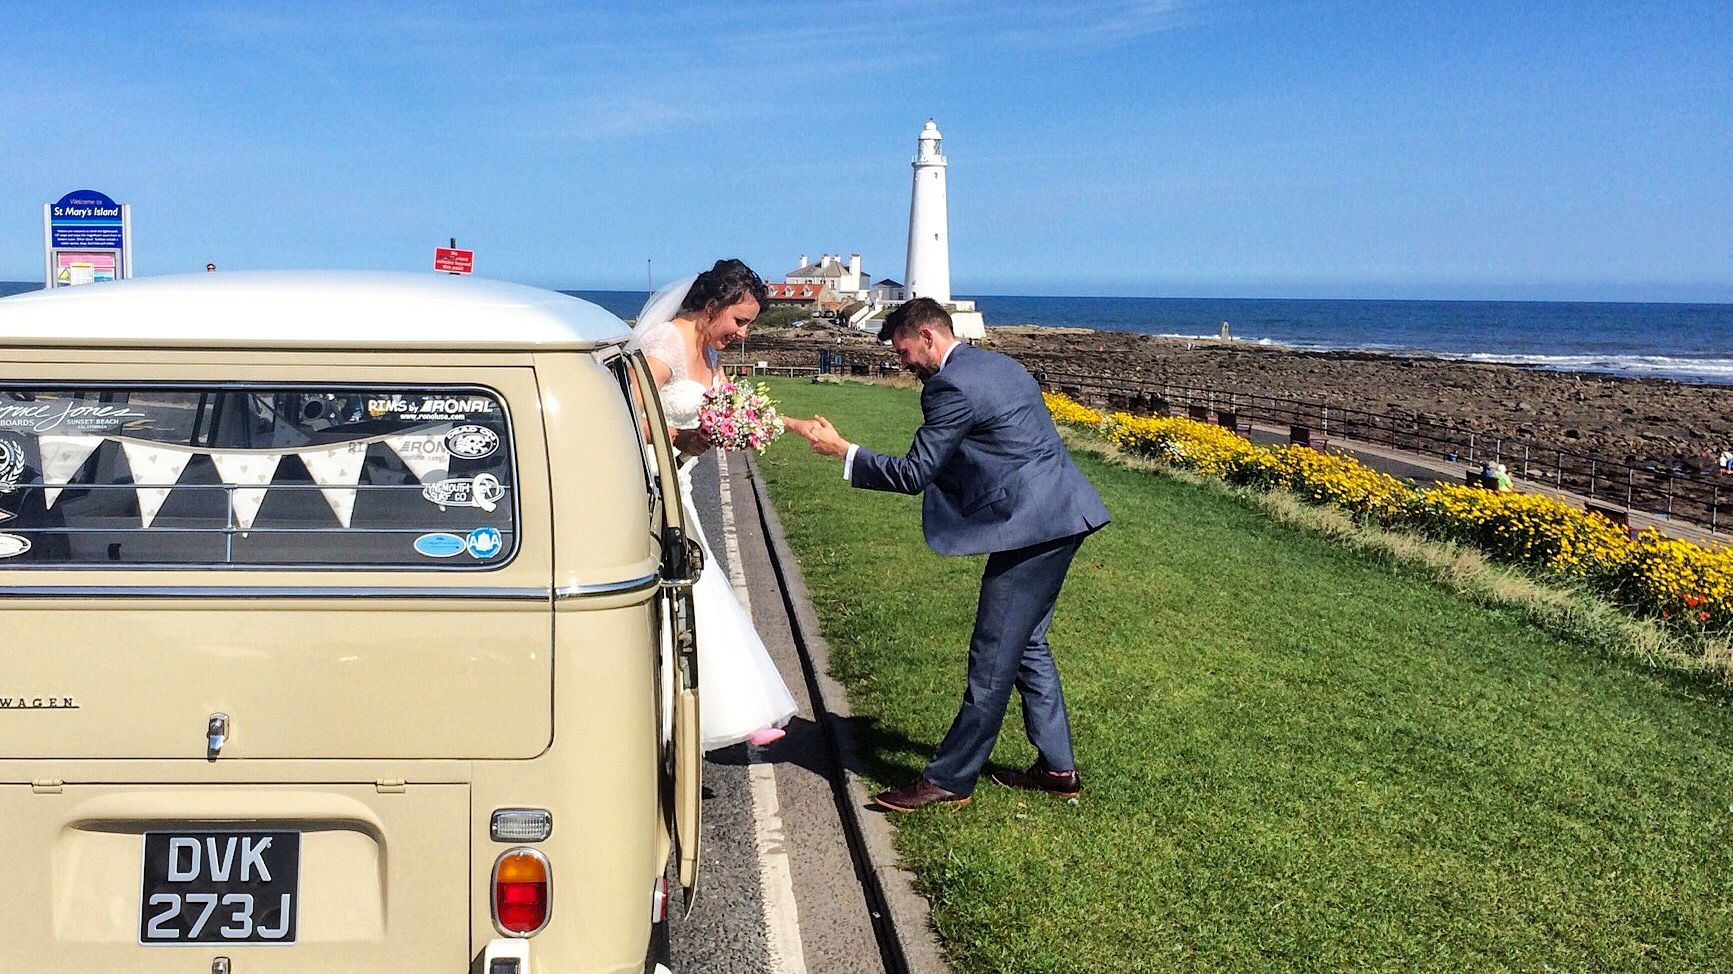 Congratulations to David and Amy arriving at St Marys Lighthouse (St Marys Island) VW Deluxe Weddings, Chauffeur driven VW Campervan wedding hire throughout the NorthEast, Northumberland, Tyne&Wear, and Durham.